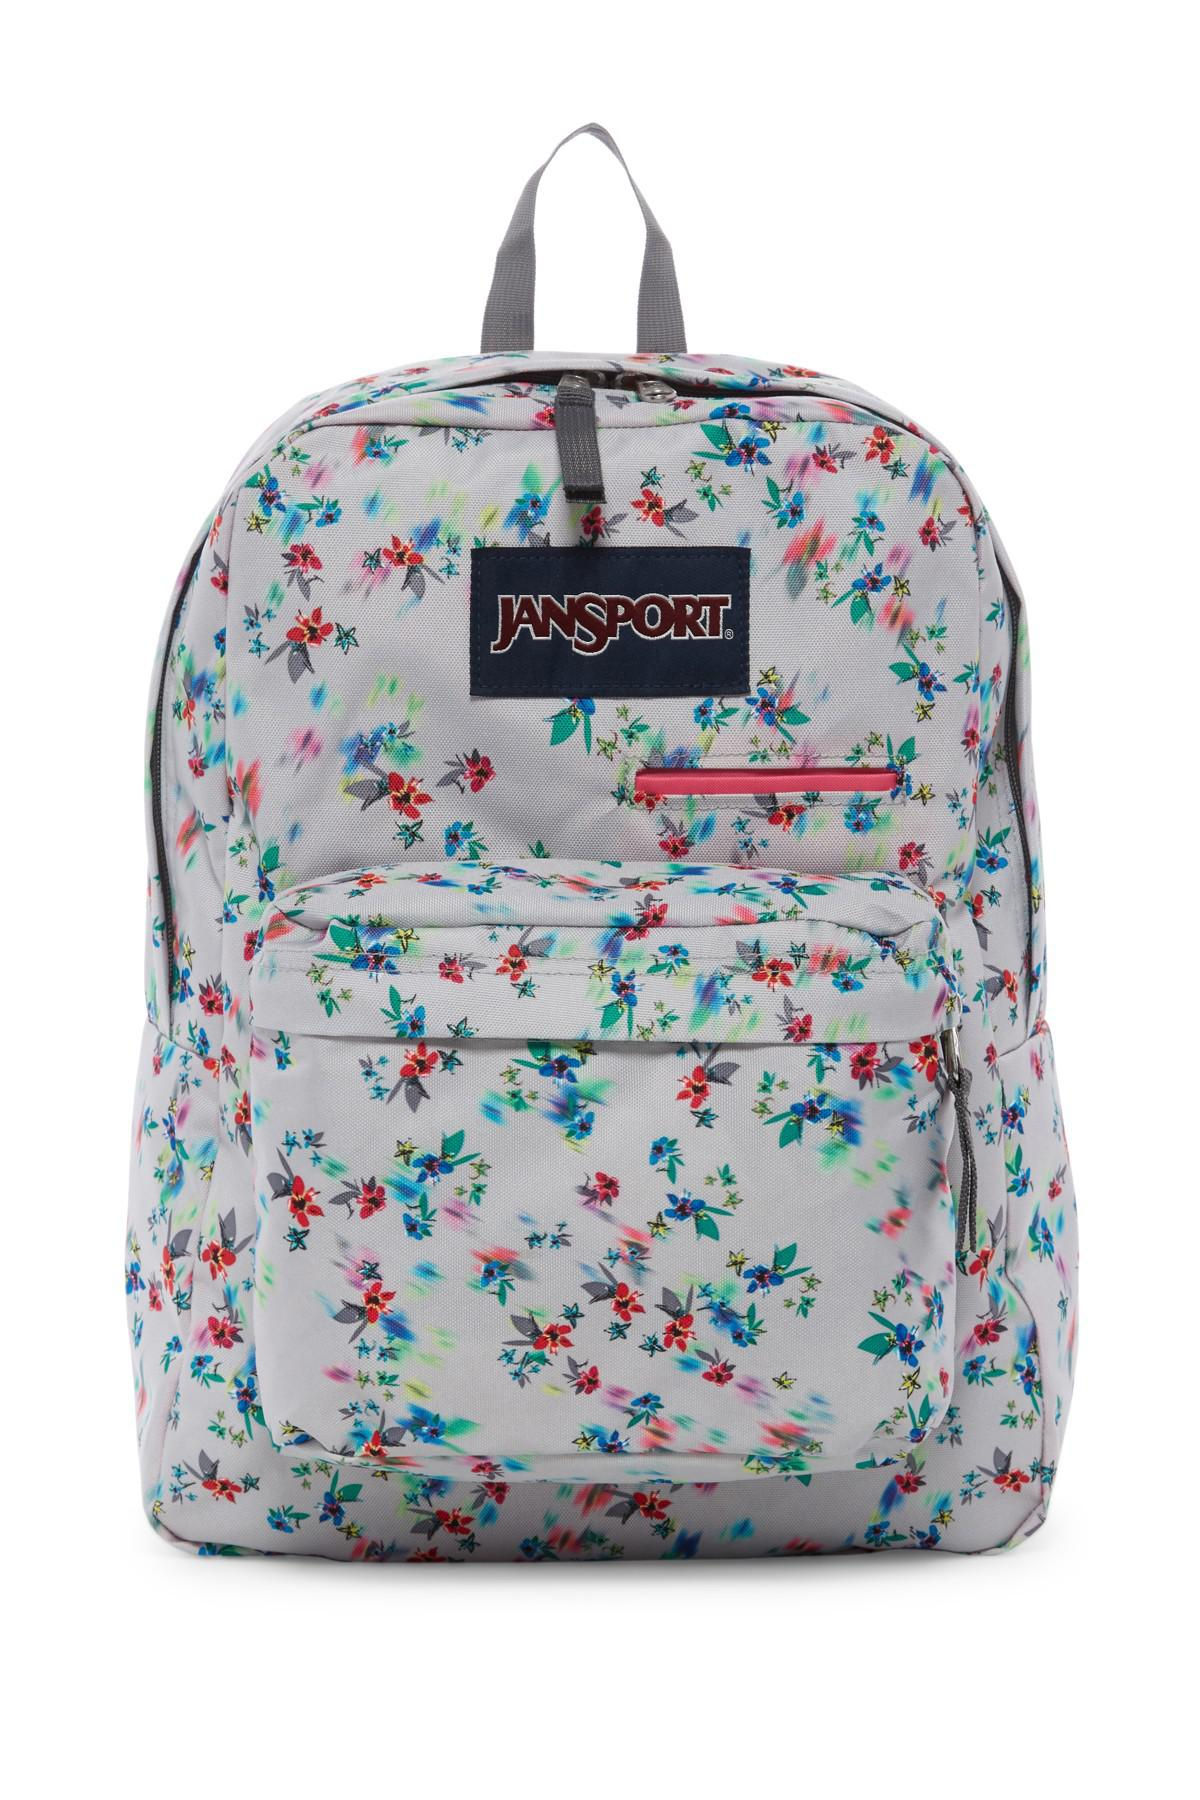 Jansport X Disney Red Tape Right Pack Backpack- Fenix Toulouse Handball fe60138d10a0d